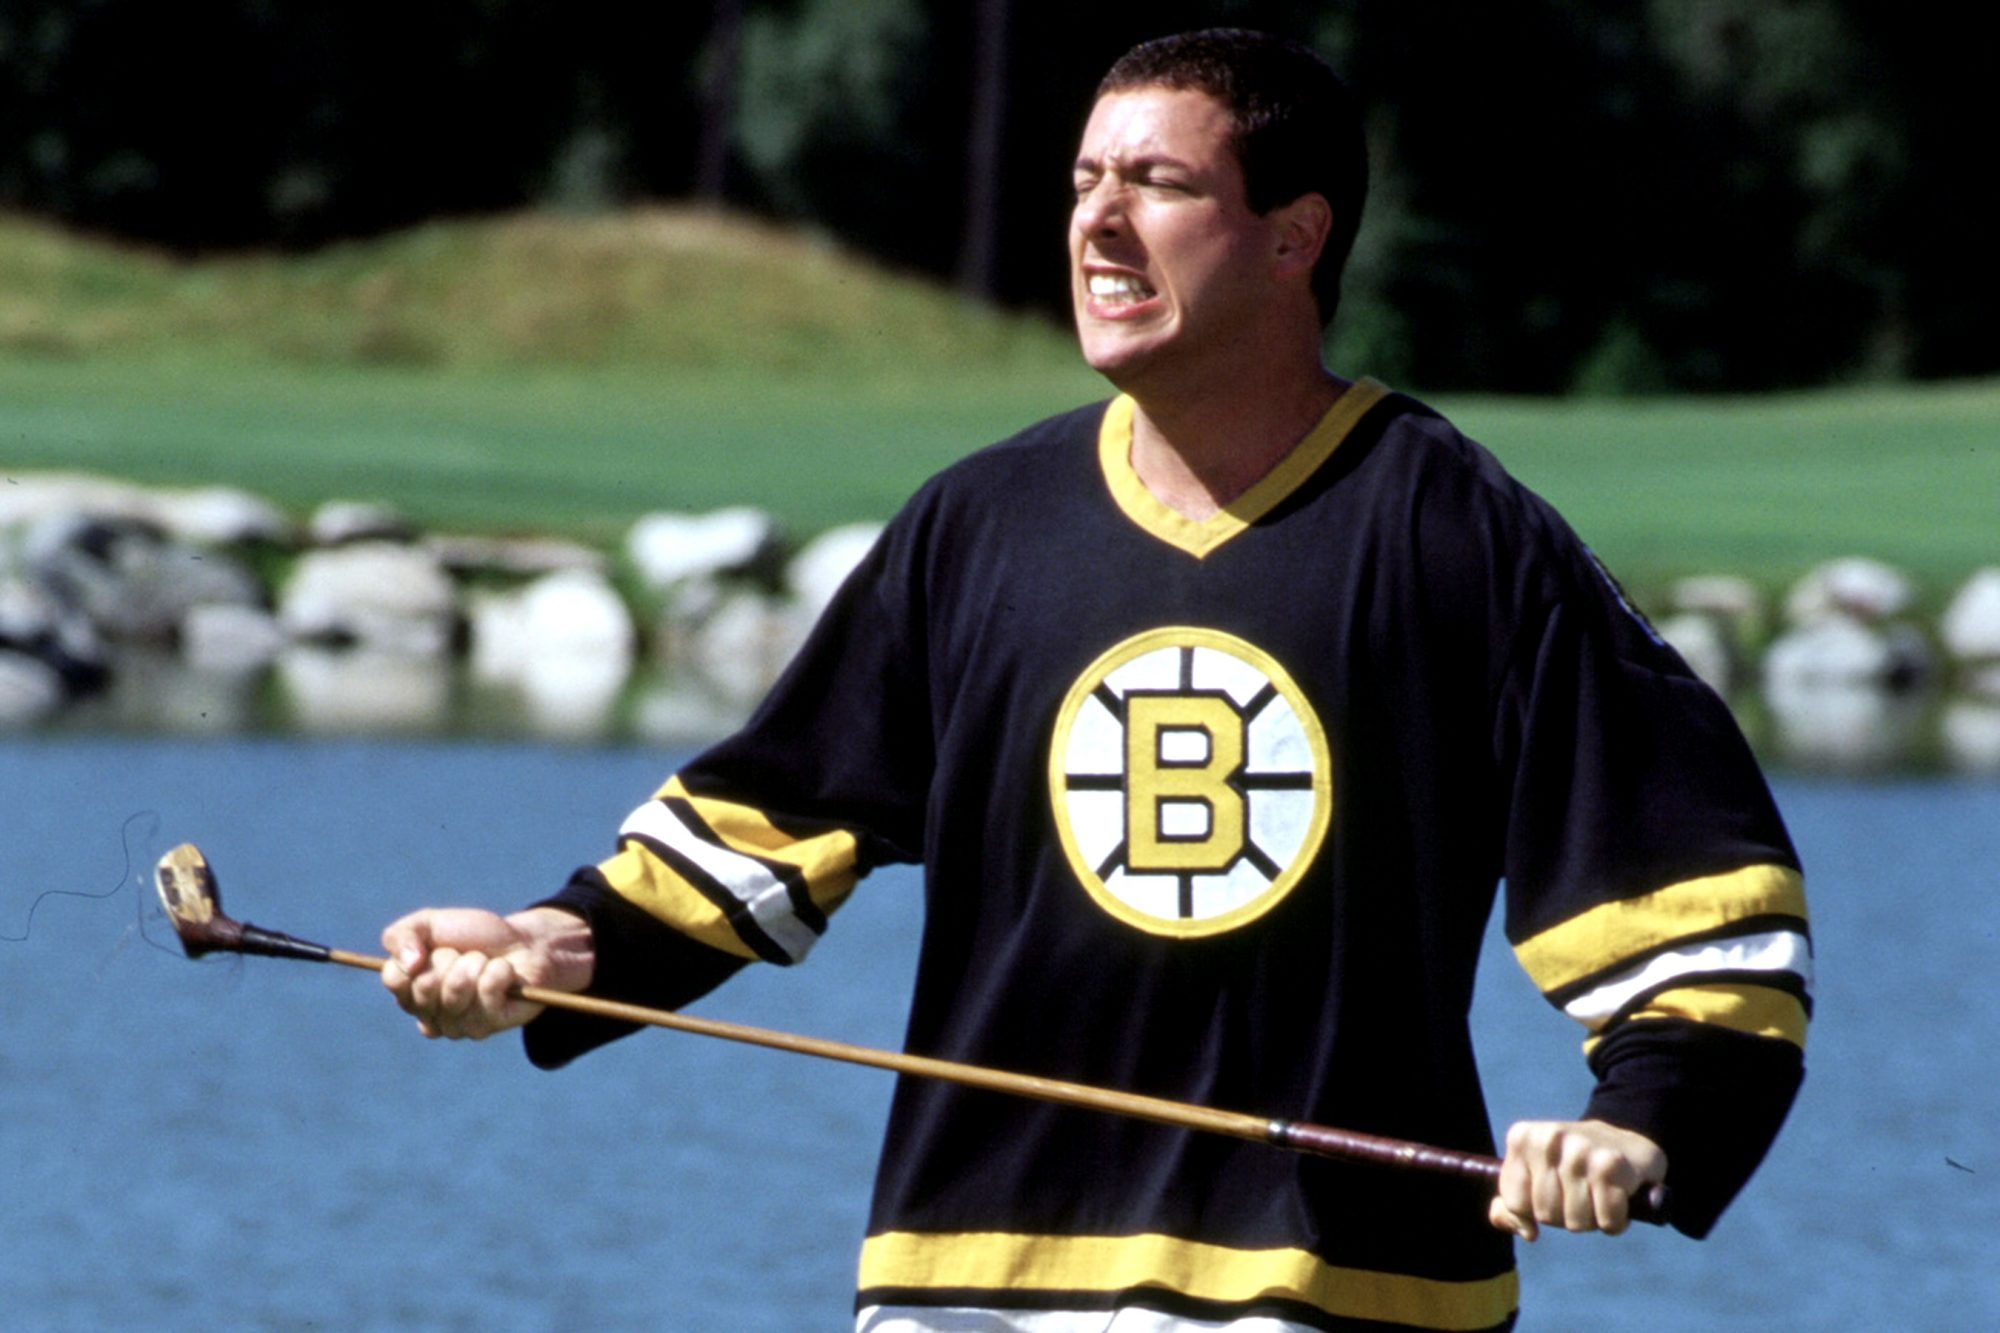 HAPPY GILMORE, Adam Sandler, 1996, (c) Universal/courtesy Everett Collection